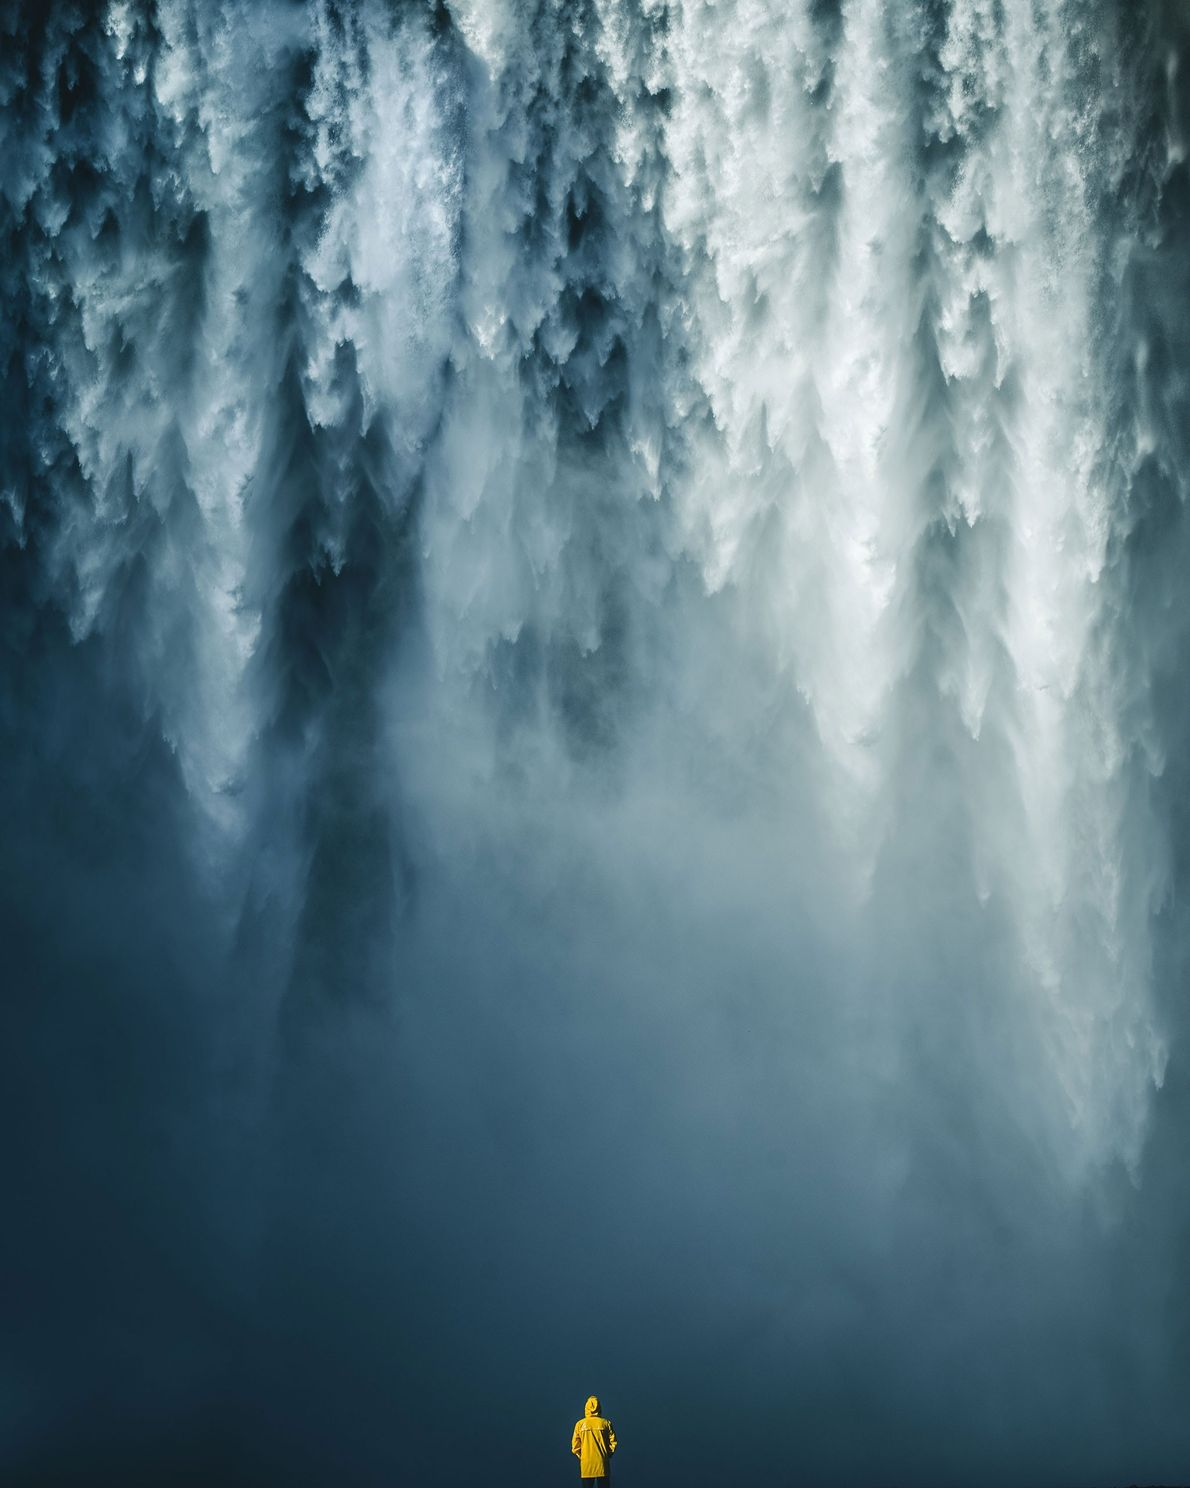 A visitor is dwarfed by the cascading water and mist of one of Iceland's famous waterfalls.